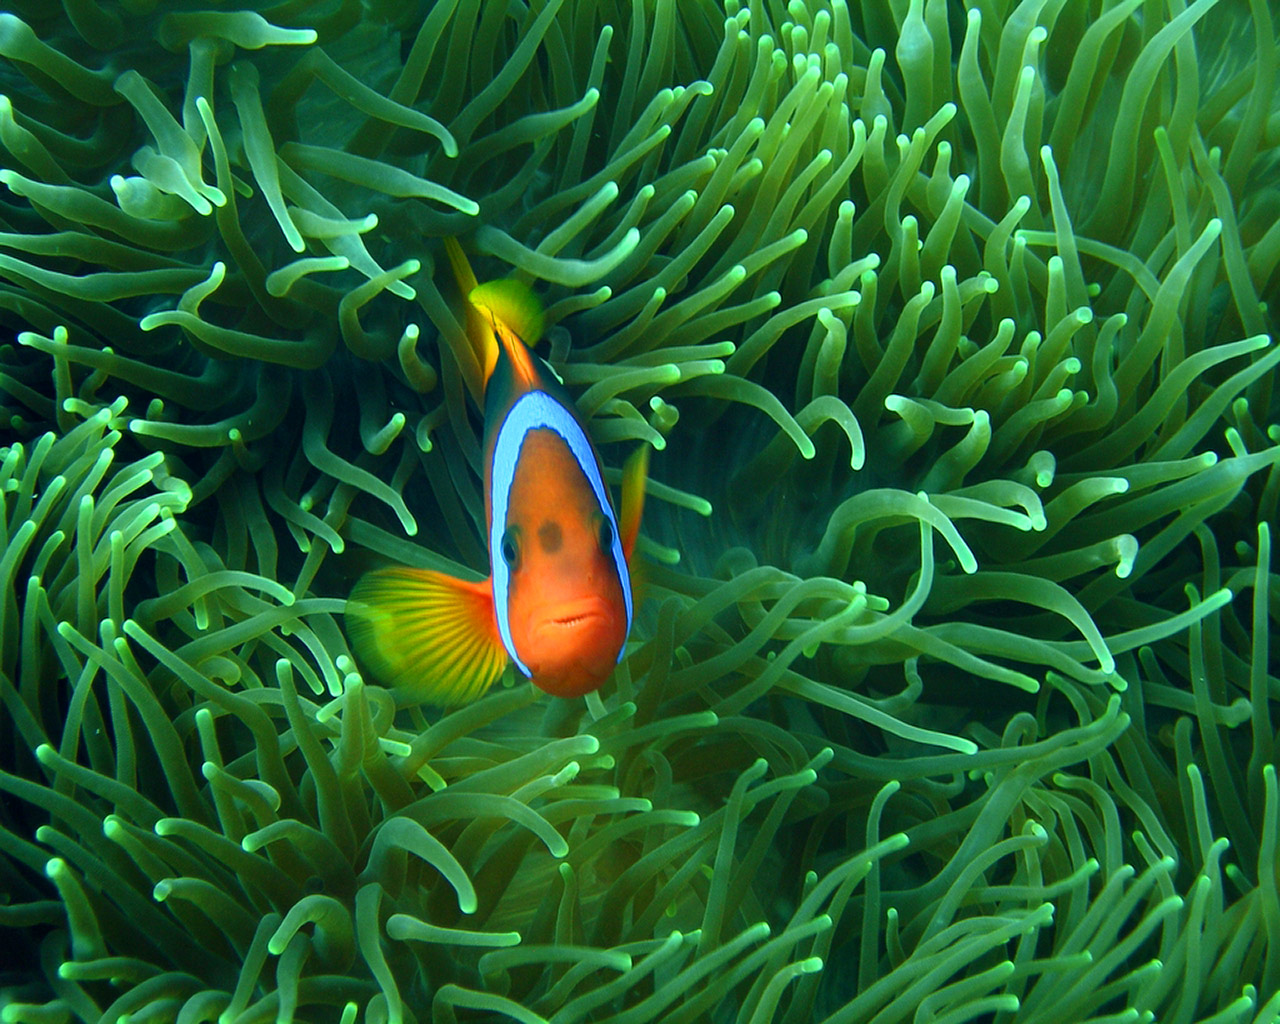 Computers Clown Fish Fish Clown Desktop Fishes Wallpaper Hd 1280x1024